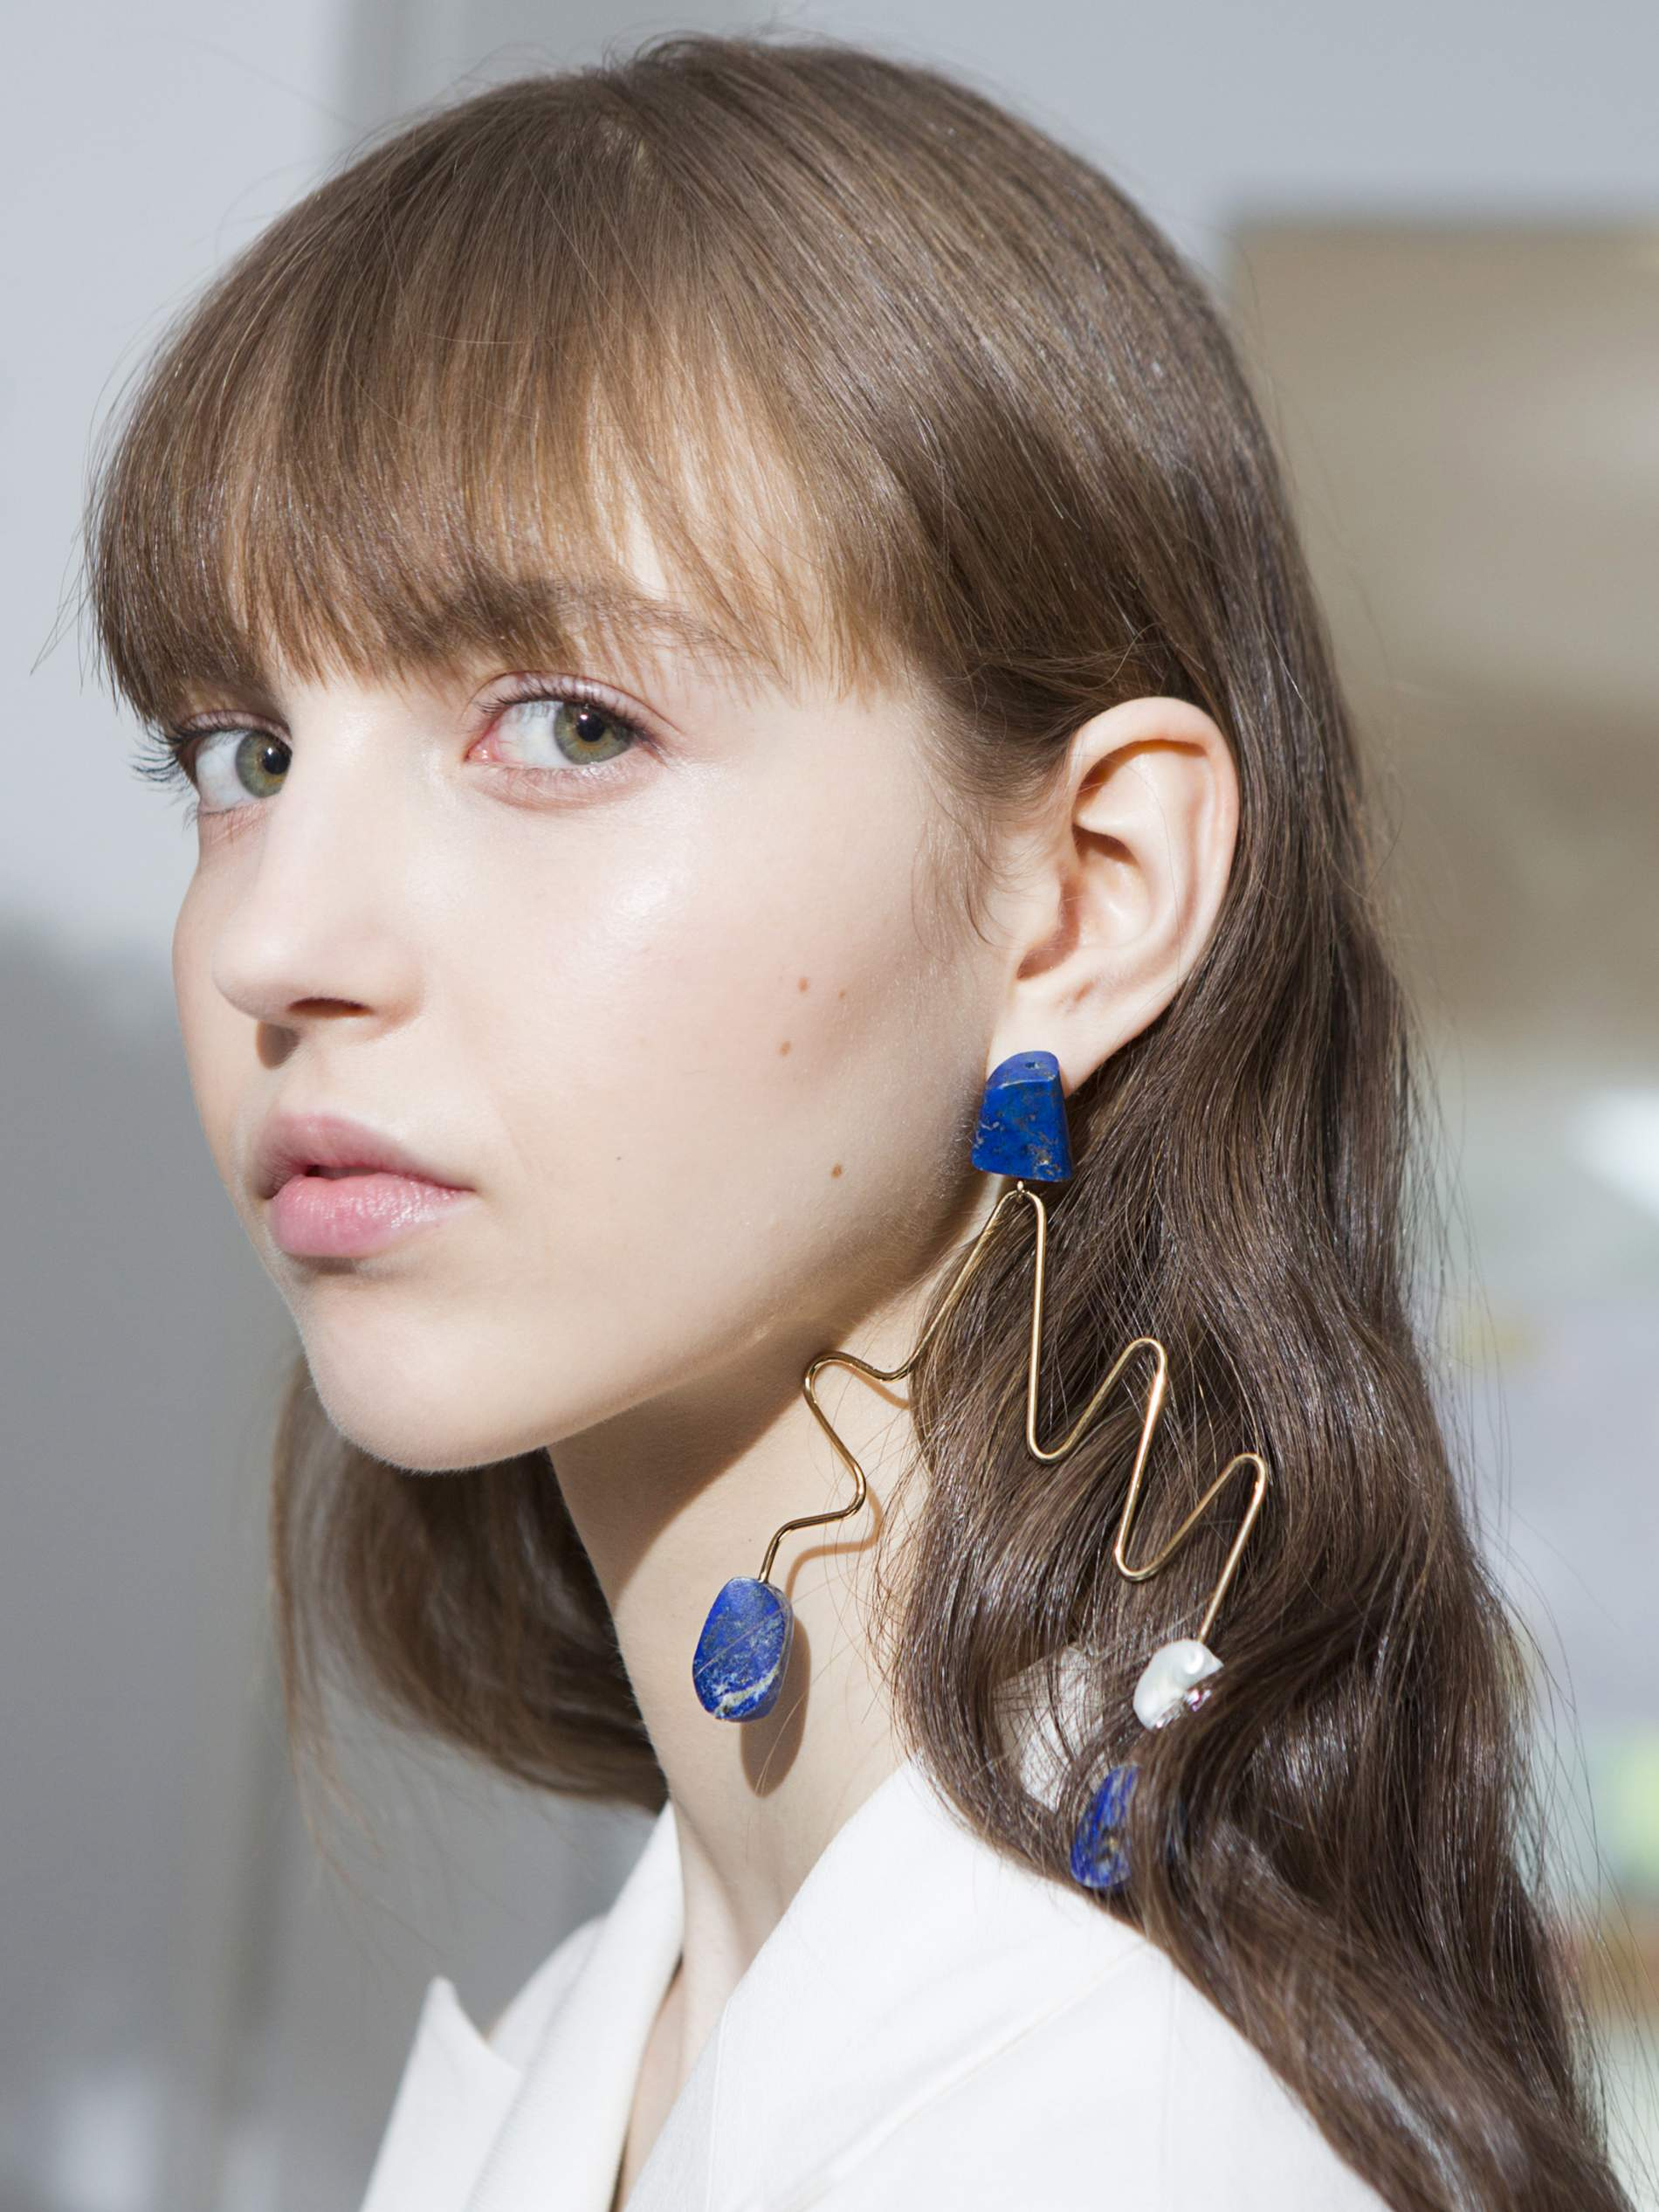 Earrings Trend The Arty Jewelry To Wear With Everything This Season